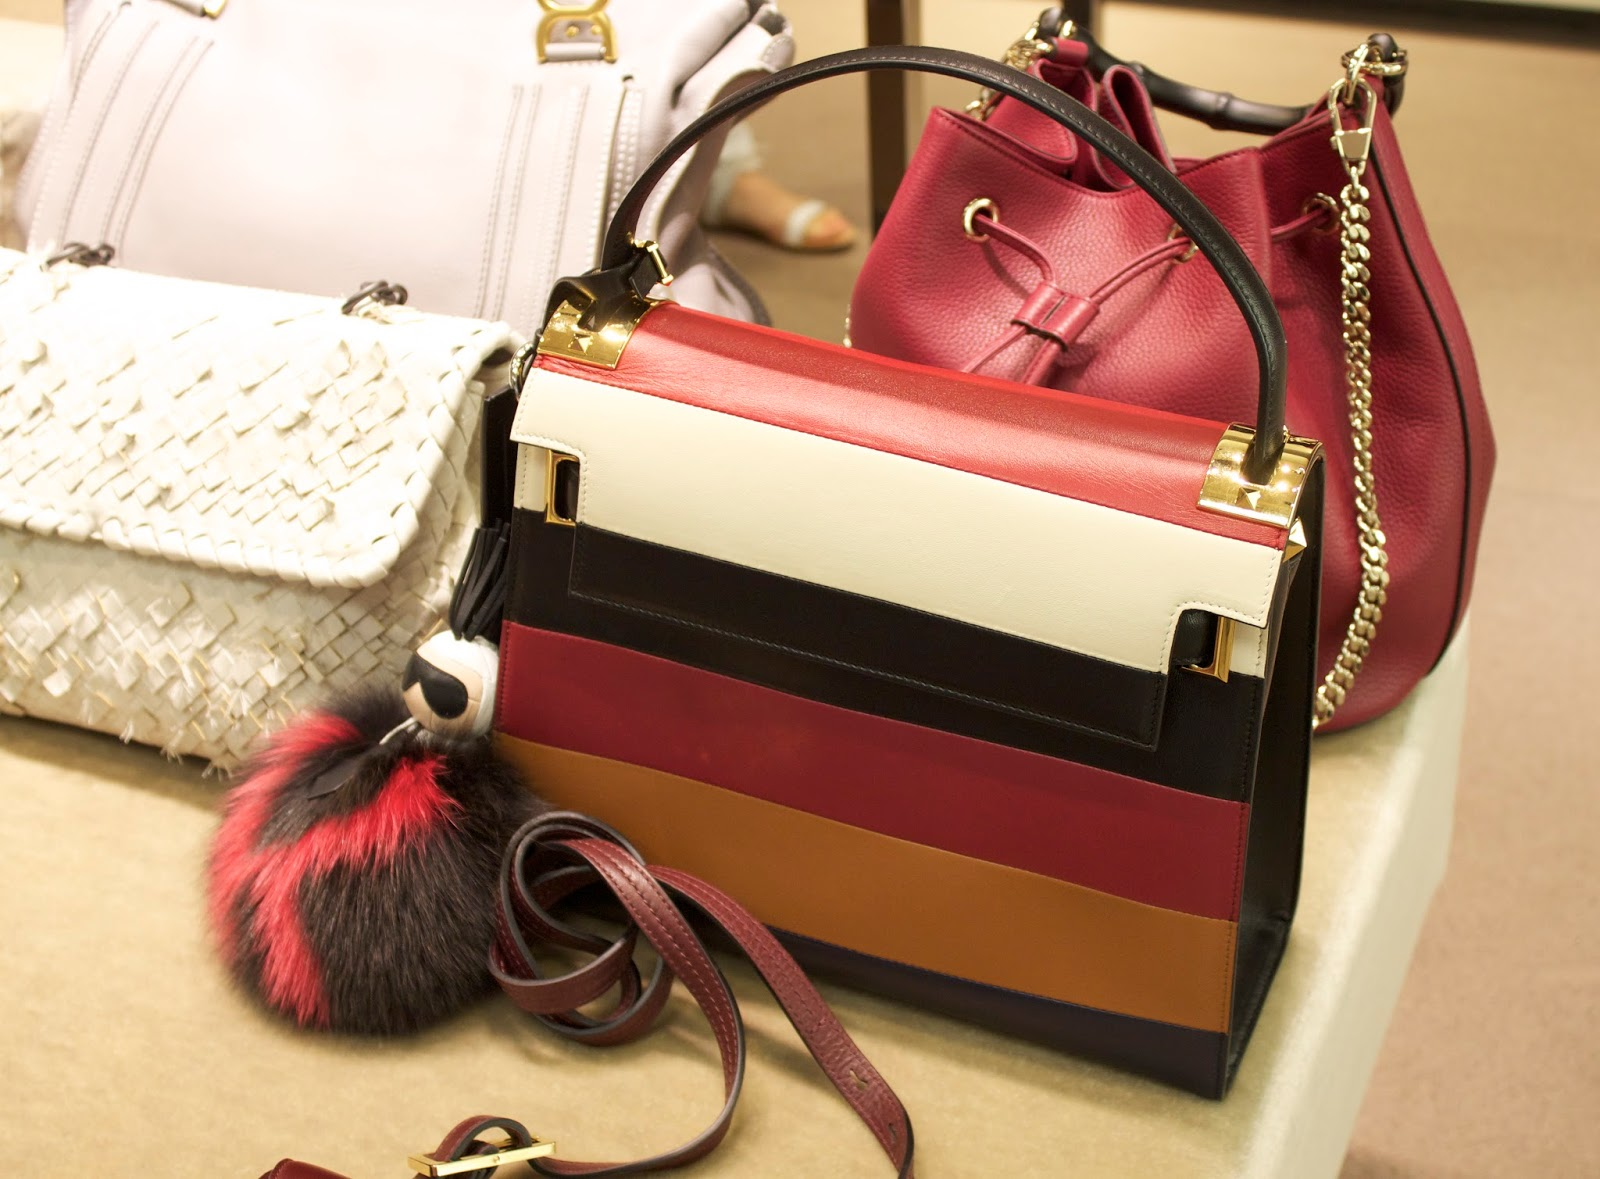 Karlito, Fendi bag, Fendi bag blogger, gorgeous bags in Neiman Marcus